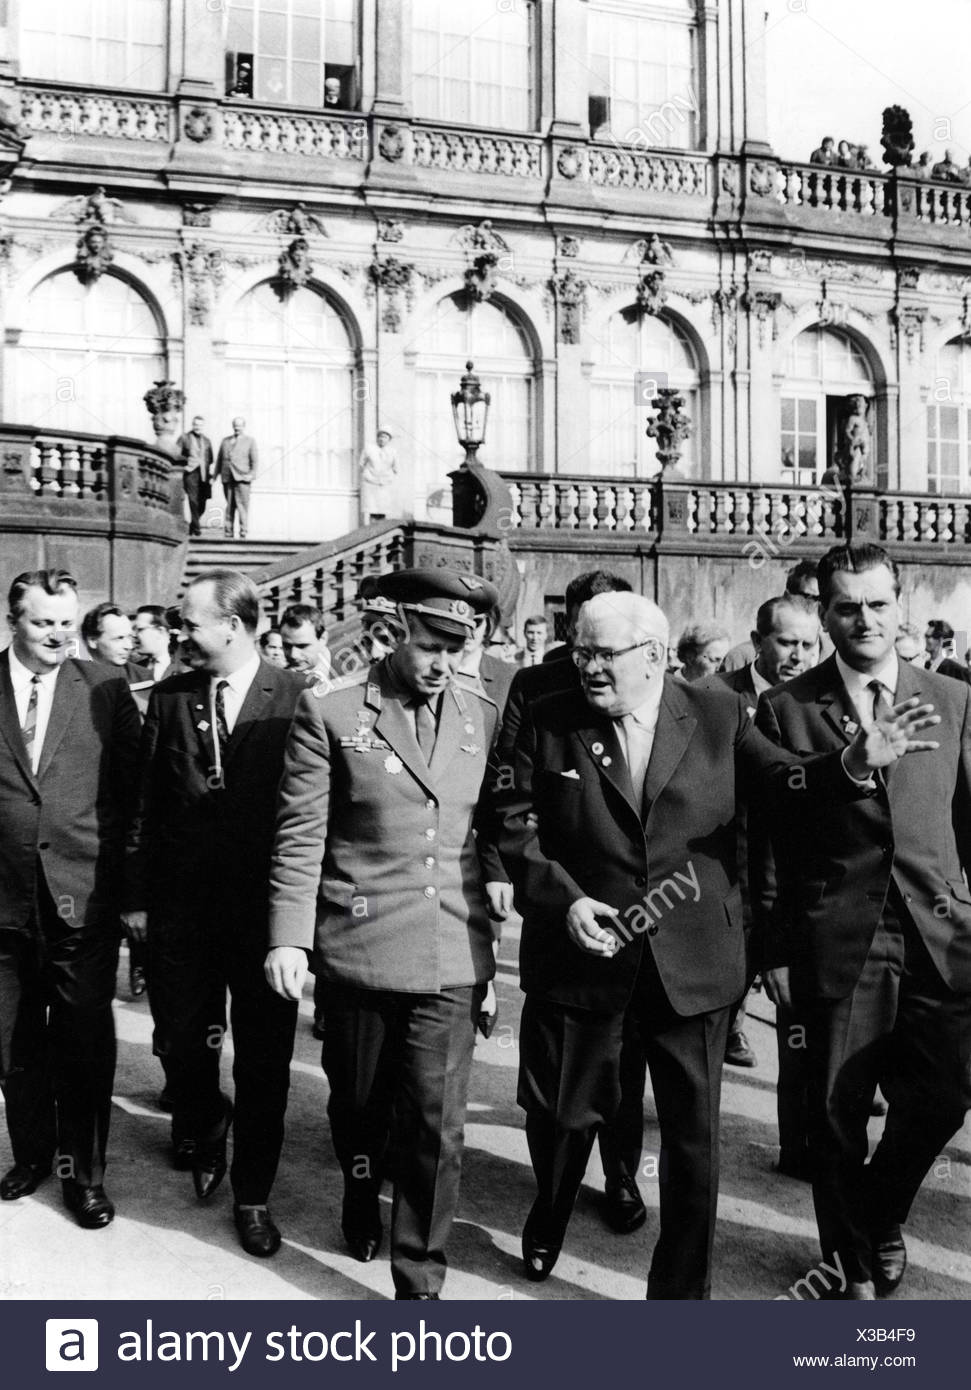 Seydewitz, Max, 19.12.1892 - 8.2.1987, German politician, Director General of Dresden State Art Collection 1955 - 1968, showing the Zwinger cosmonaut Alexei Leonov, 9.10.1965, , Additional-Rights-Clearances-NA - Stock Image